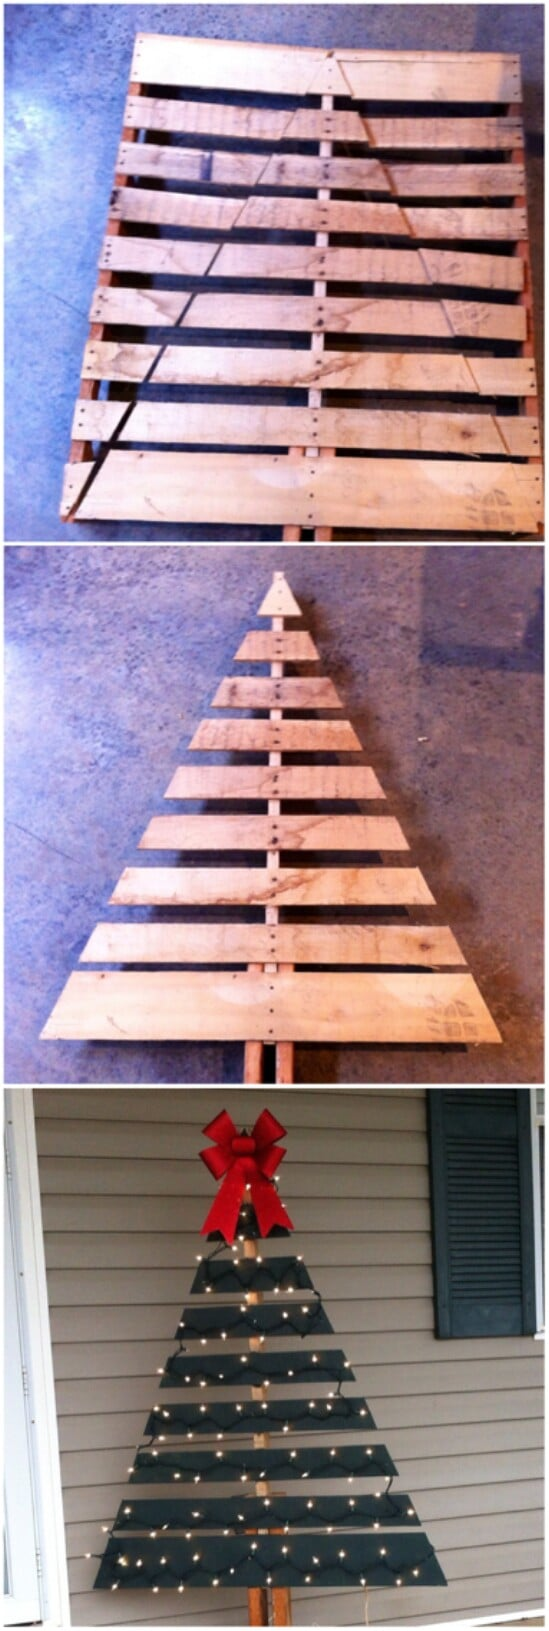 20 impossibly creative diy outdoor christmas decorations diy crafts diy pallet christmas tree solutioingenieria